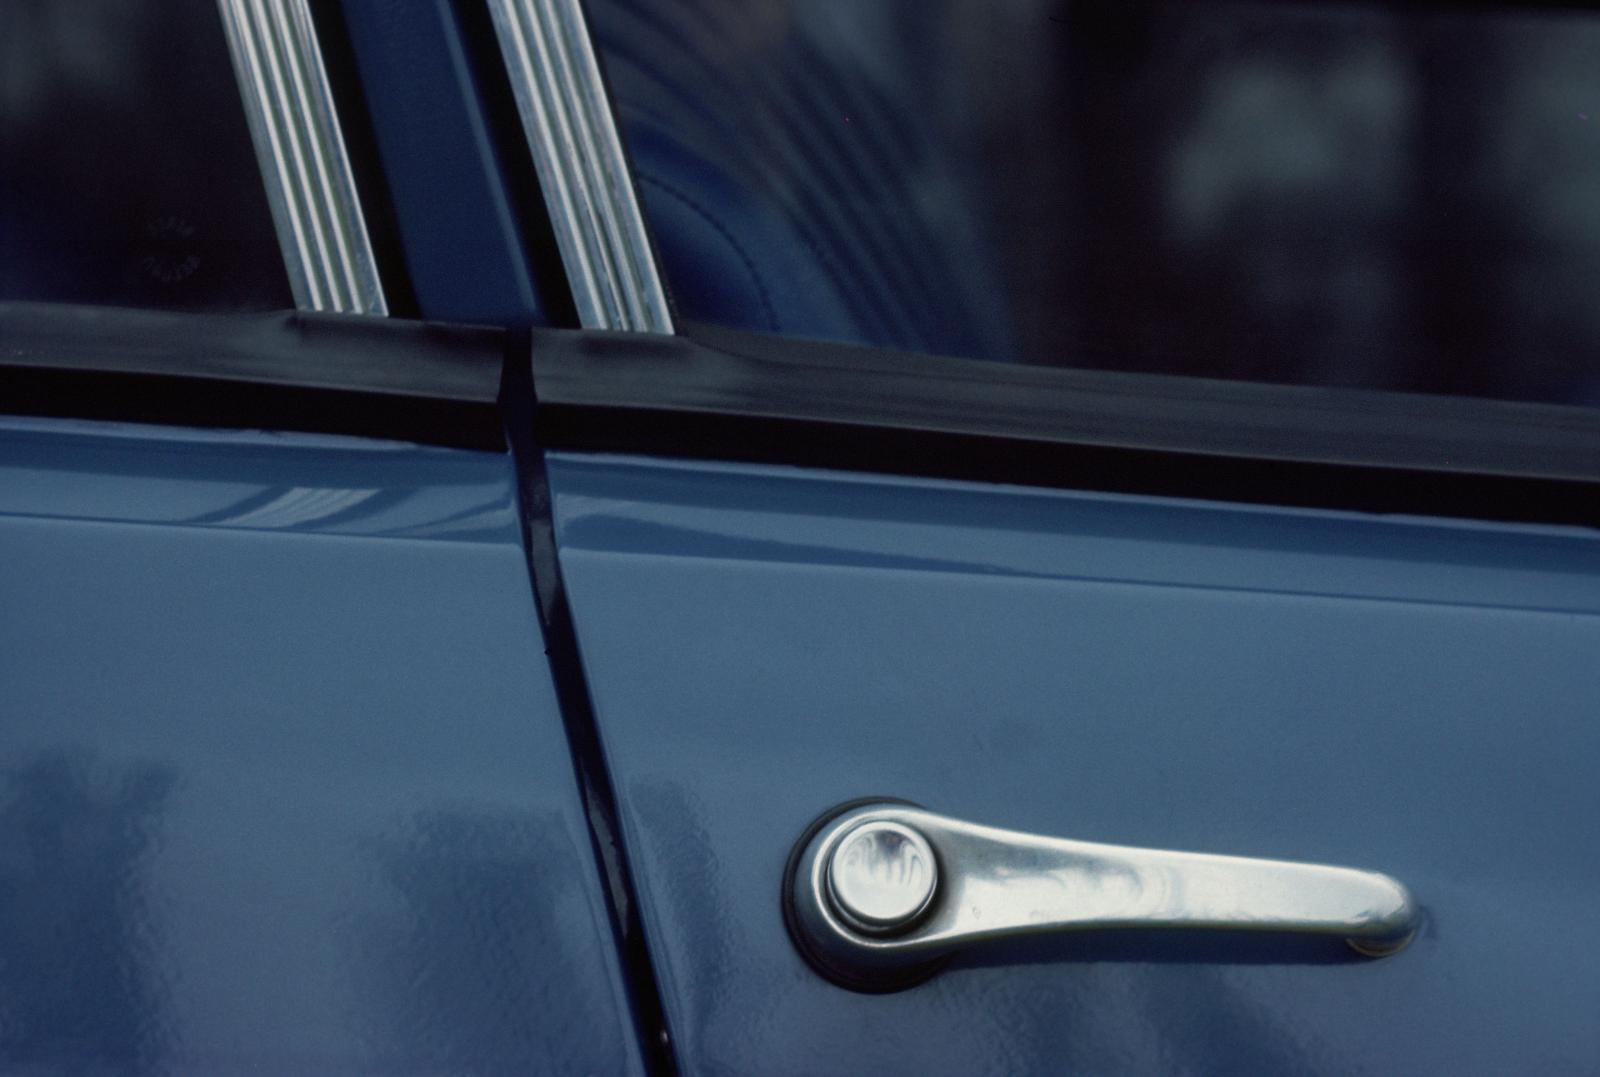 AMI 6 door handle